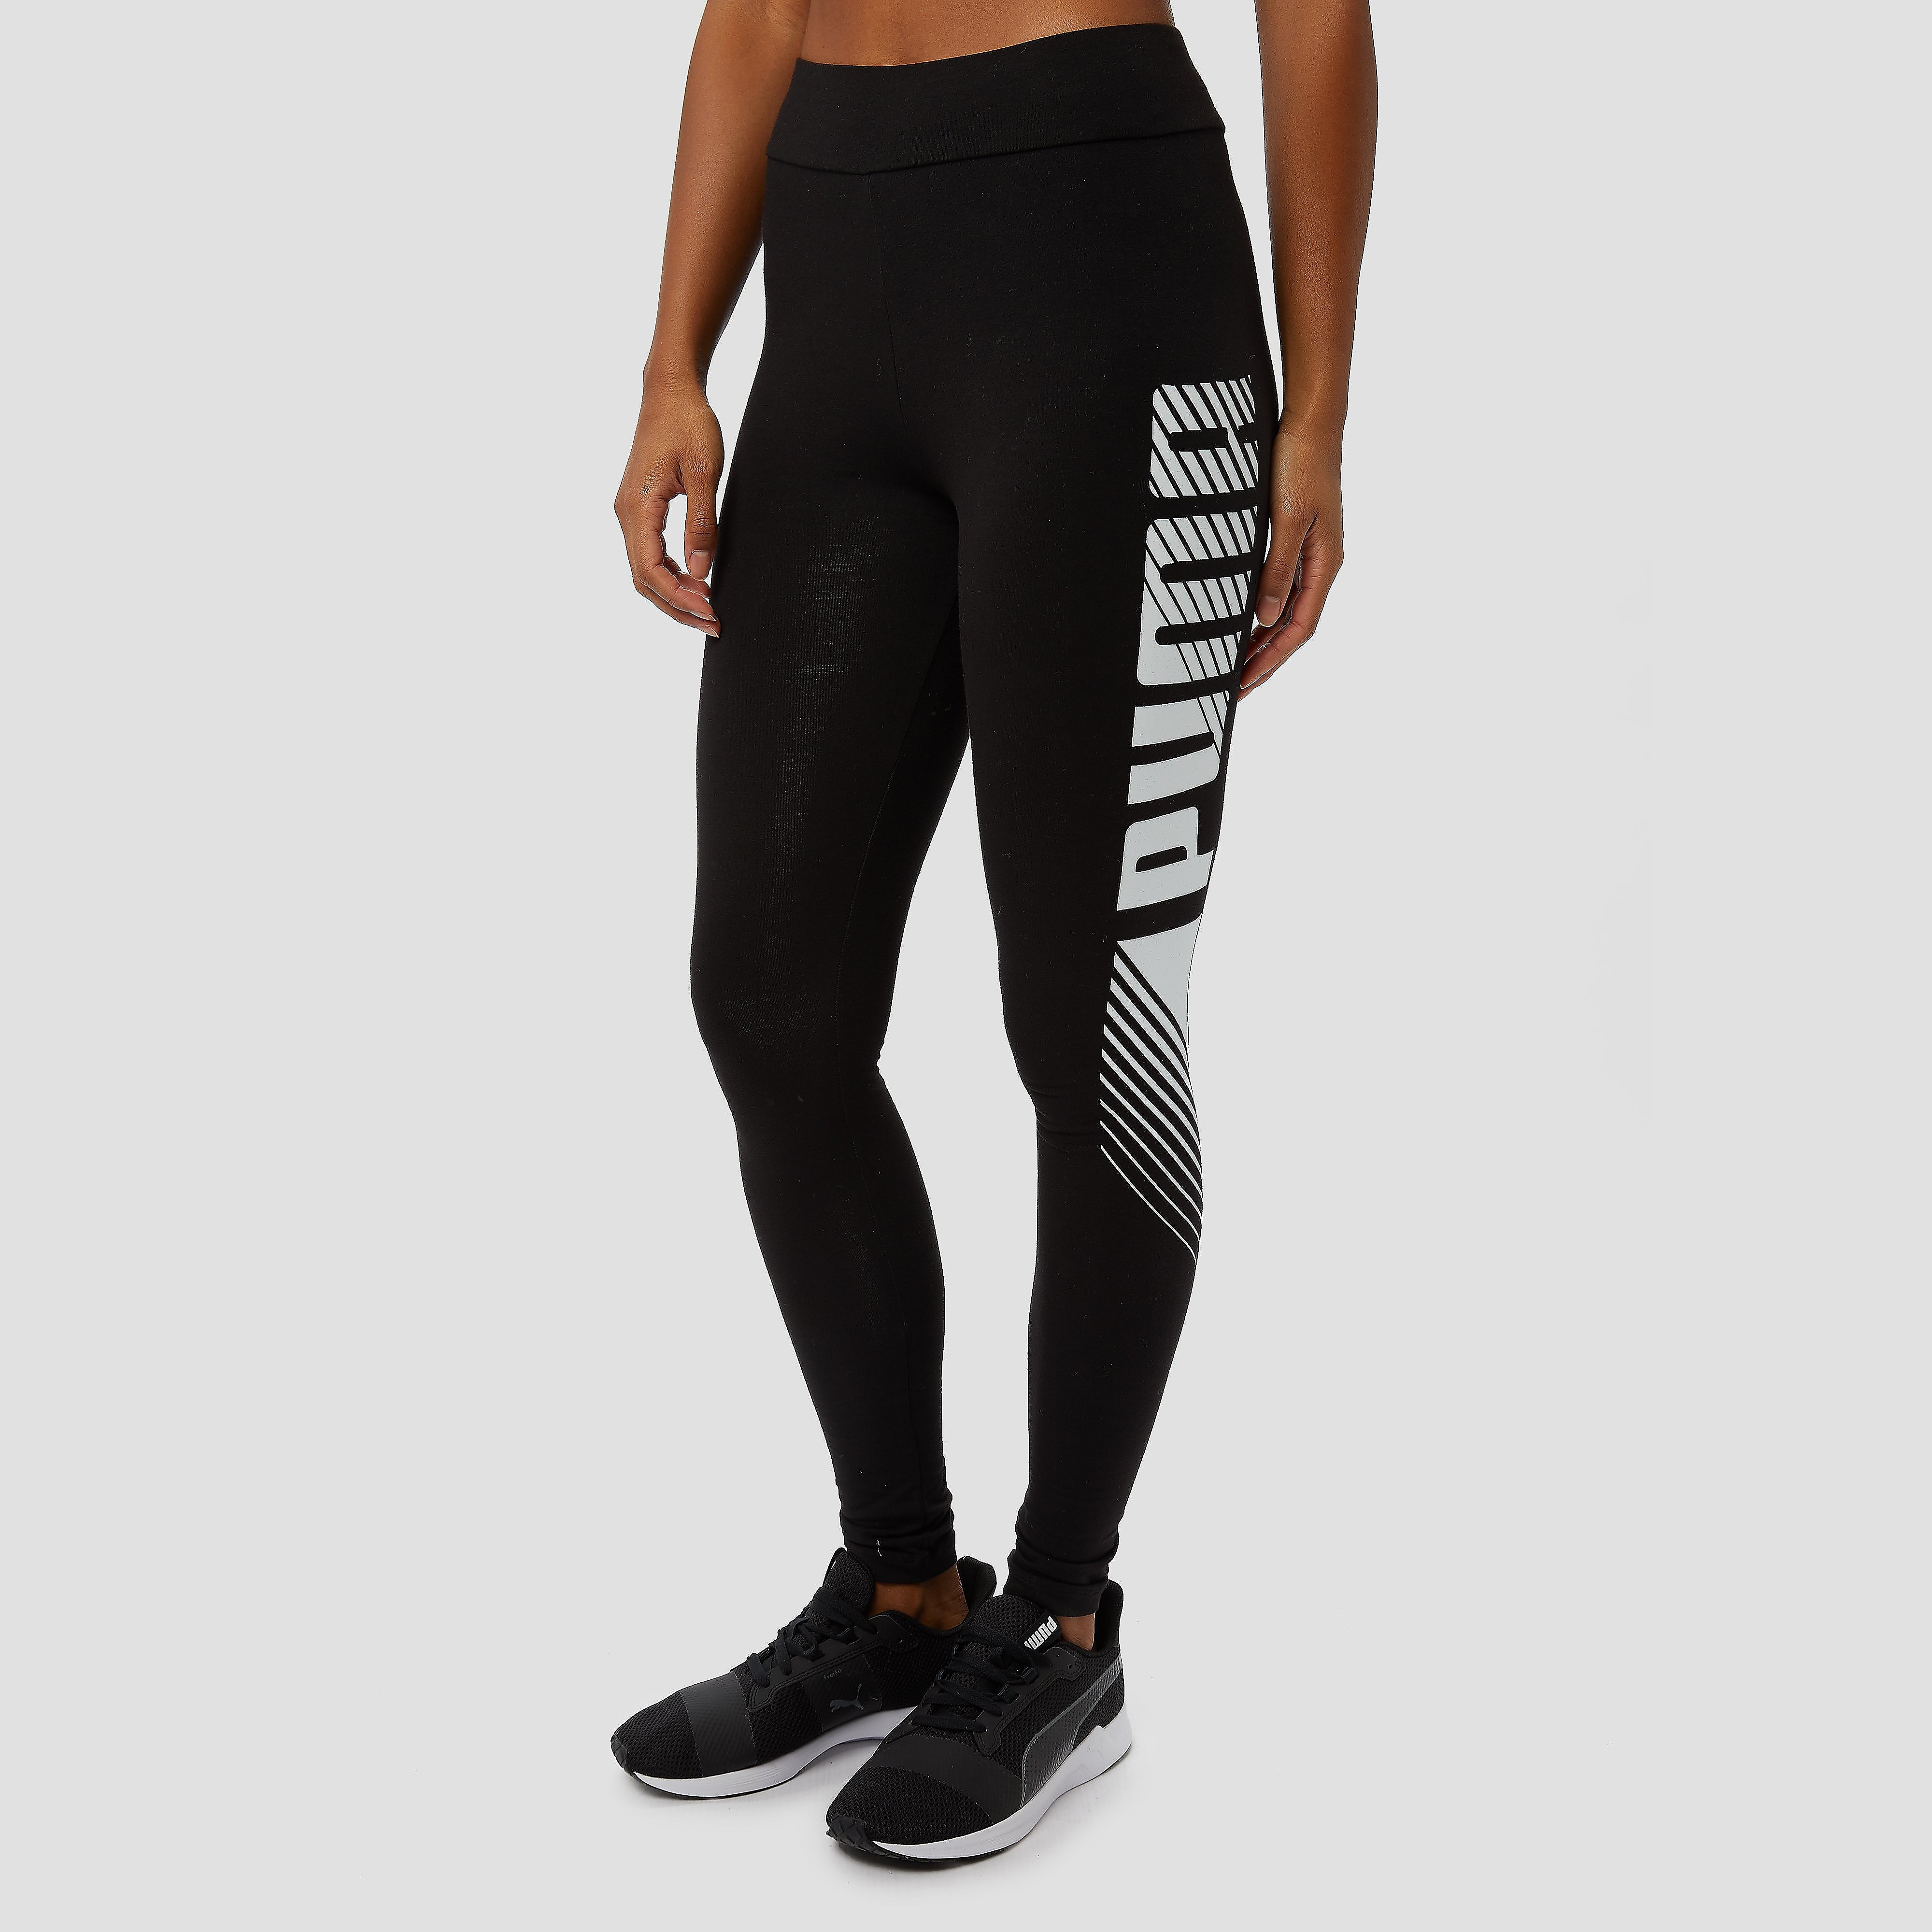 7-8 sportlegging zwart